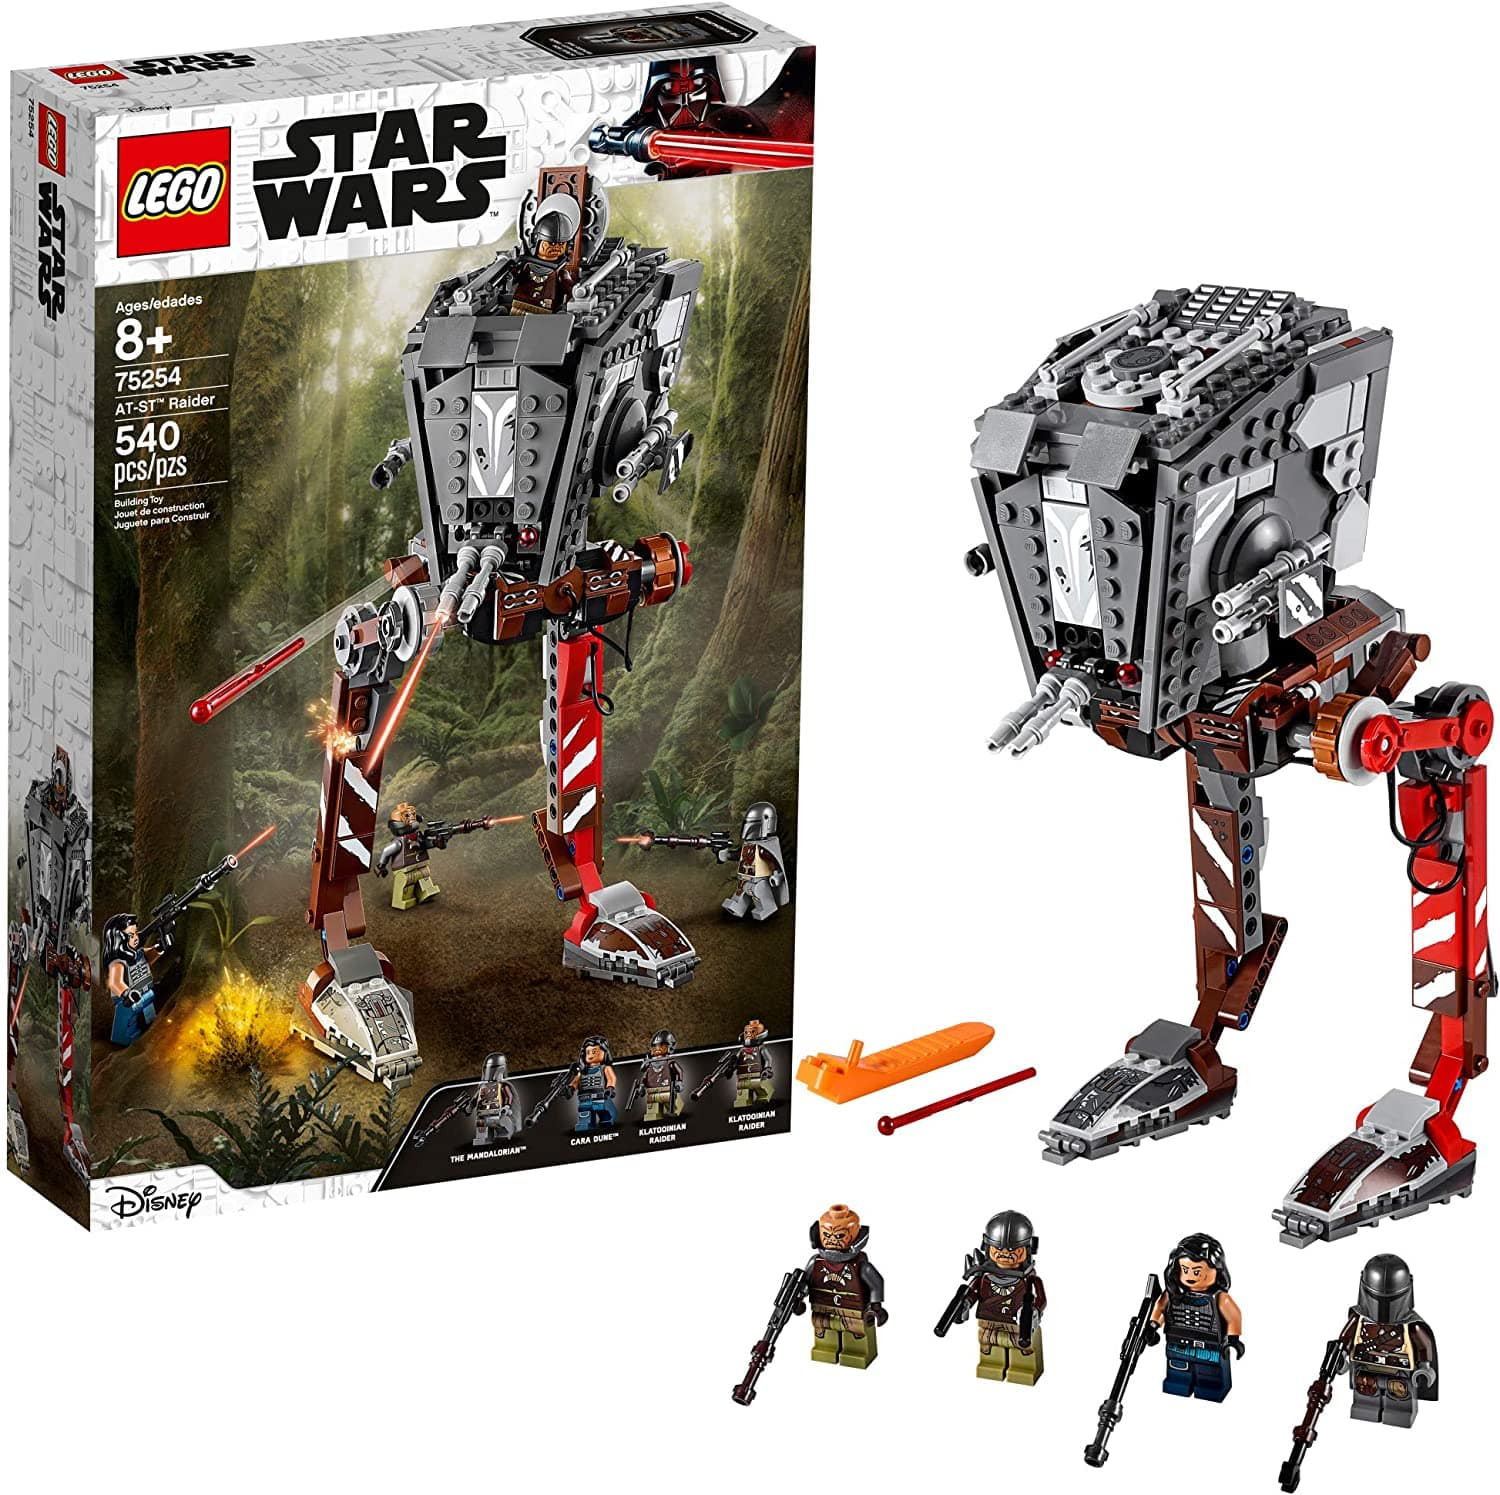 LEGO Star Wars AT-ST Raider 75254 The Mandalorian Collectible All Terrain Scout Transport Walker Posable Building Model (540 Pieces) $49.99